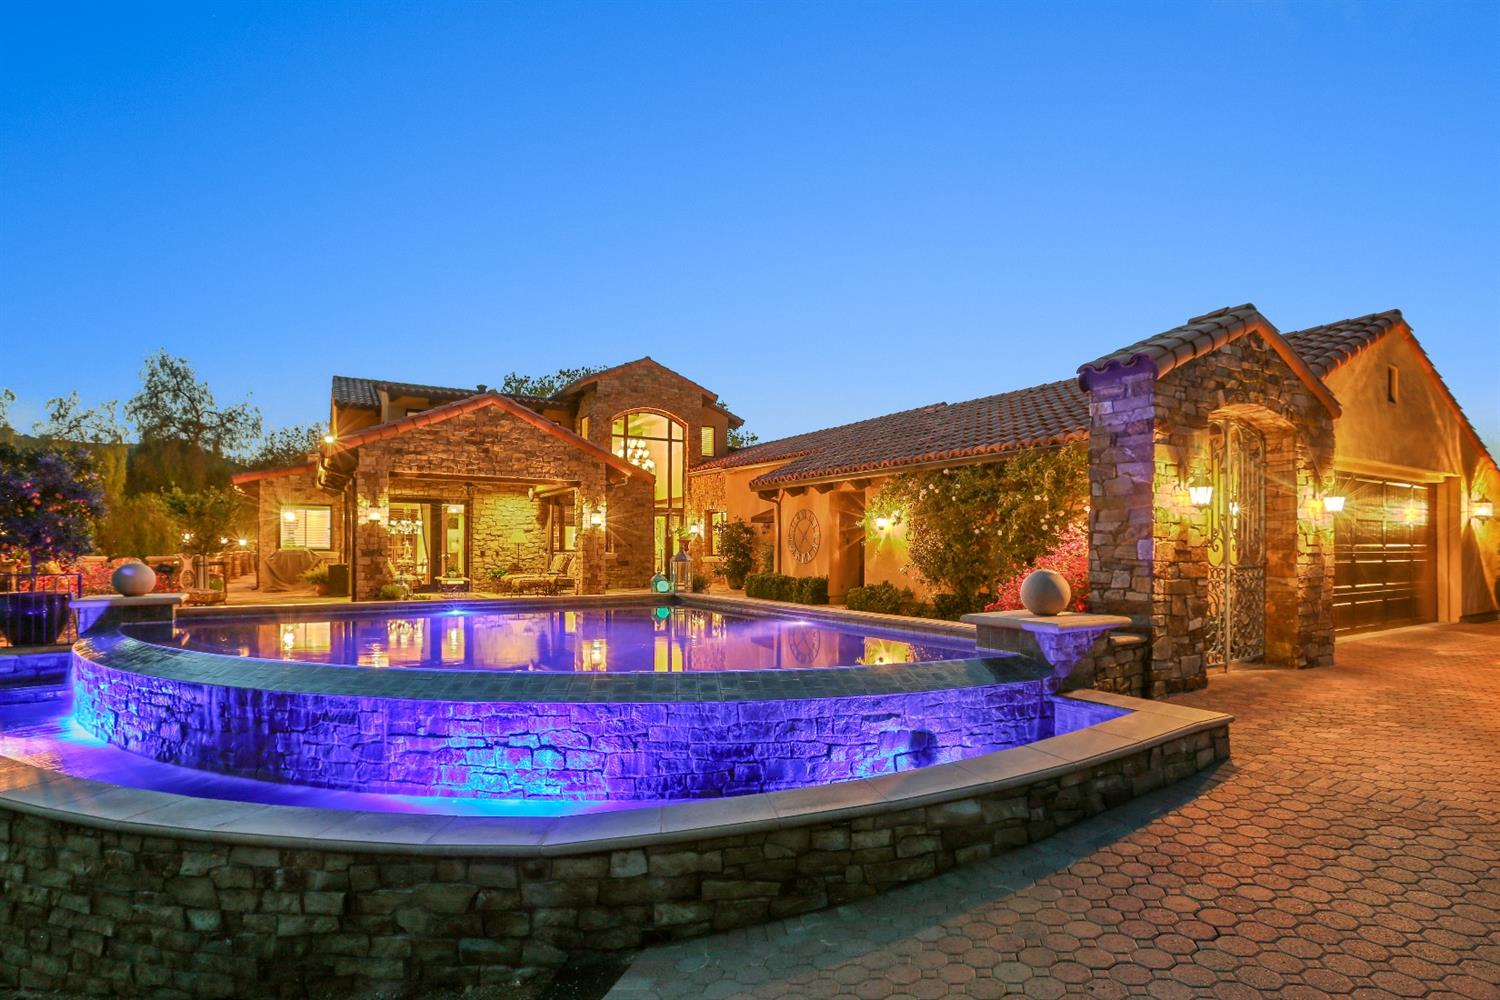 Luxurious estate set on 20 acres in the foothills of Lemon Cove! This home features breathtaking views of the Valley, while it sits in the quiet privacy of the Kalamata olive trees that surround the estate. The outdoor kitchen, infinity pool, pool bath and wine cellar dug into the hillside under the home are just a few of many amenities. The large kitchen is equipped with a commercial grade stove, three ovens, warming drawer and built in refrigerator and freezer. There is a large granite island with a prep sink and and ice maker. The oversized butler's pantry has a second dishwasher ,a second refrigerator. with counter tops for plating food and plenty of storage. The living area has a spectacular stone fireplace, dining room and lounge area are perfect for a quiet evening or to entertain a large group. The two story entry is stunning.. The gorgeous closet in the master is breath taking and has it's own ''shoe room''. The thousands of sq ft rock patio set off the magnificent Valley view